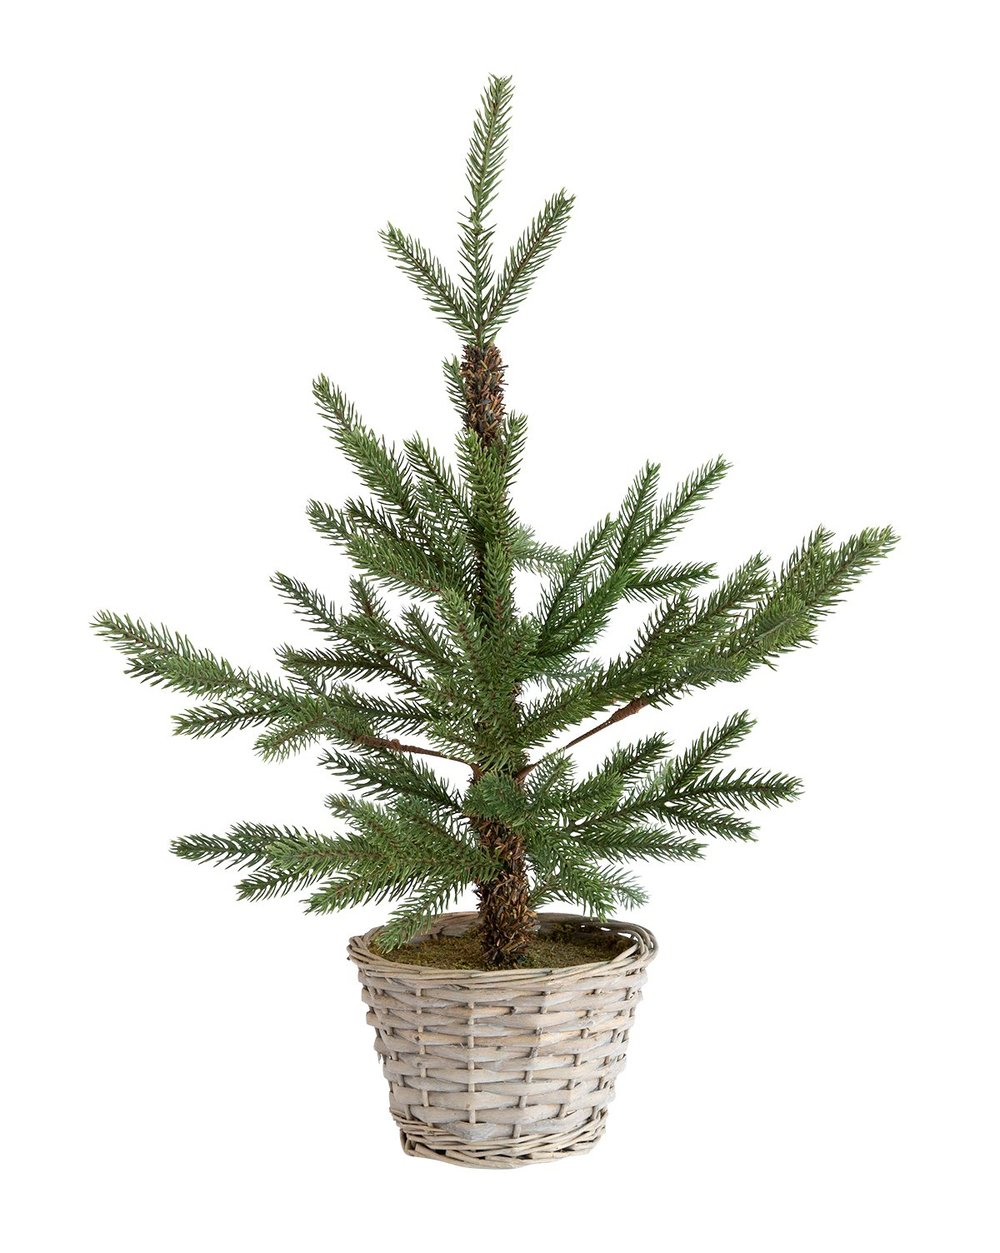 Faux_Tree_in_Wicker_Basket_1.jpg